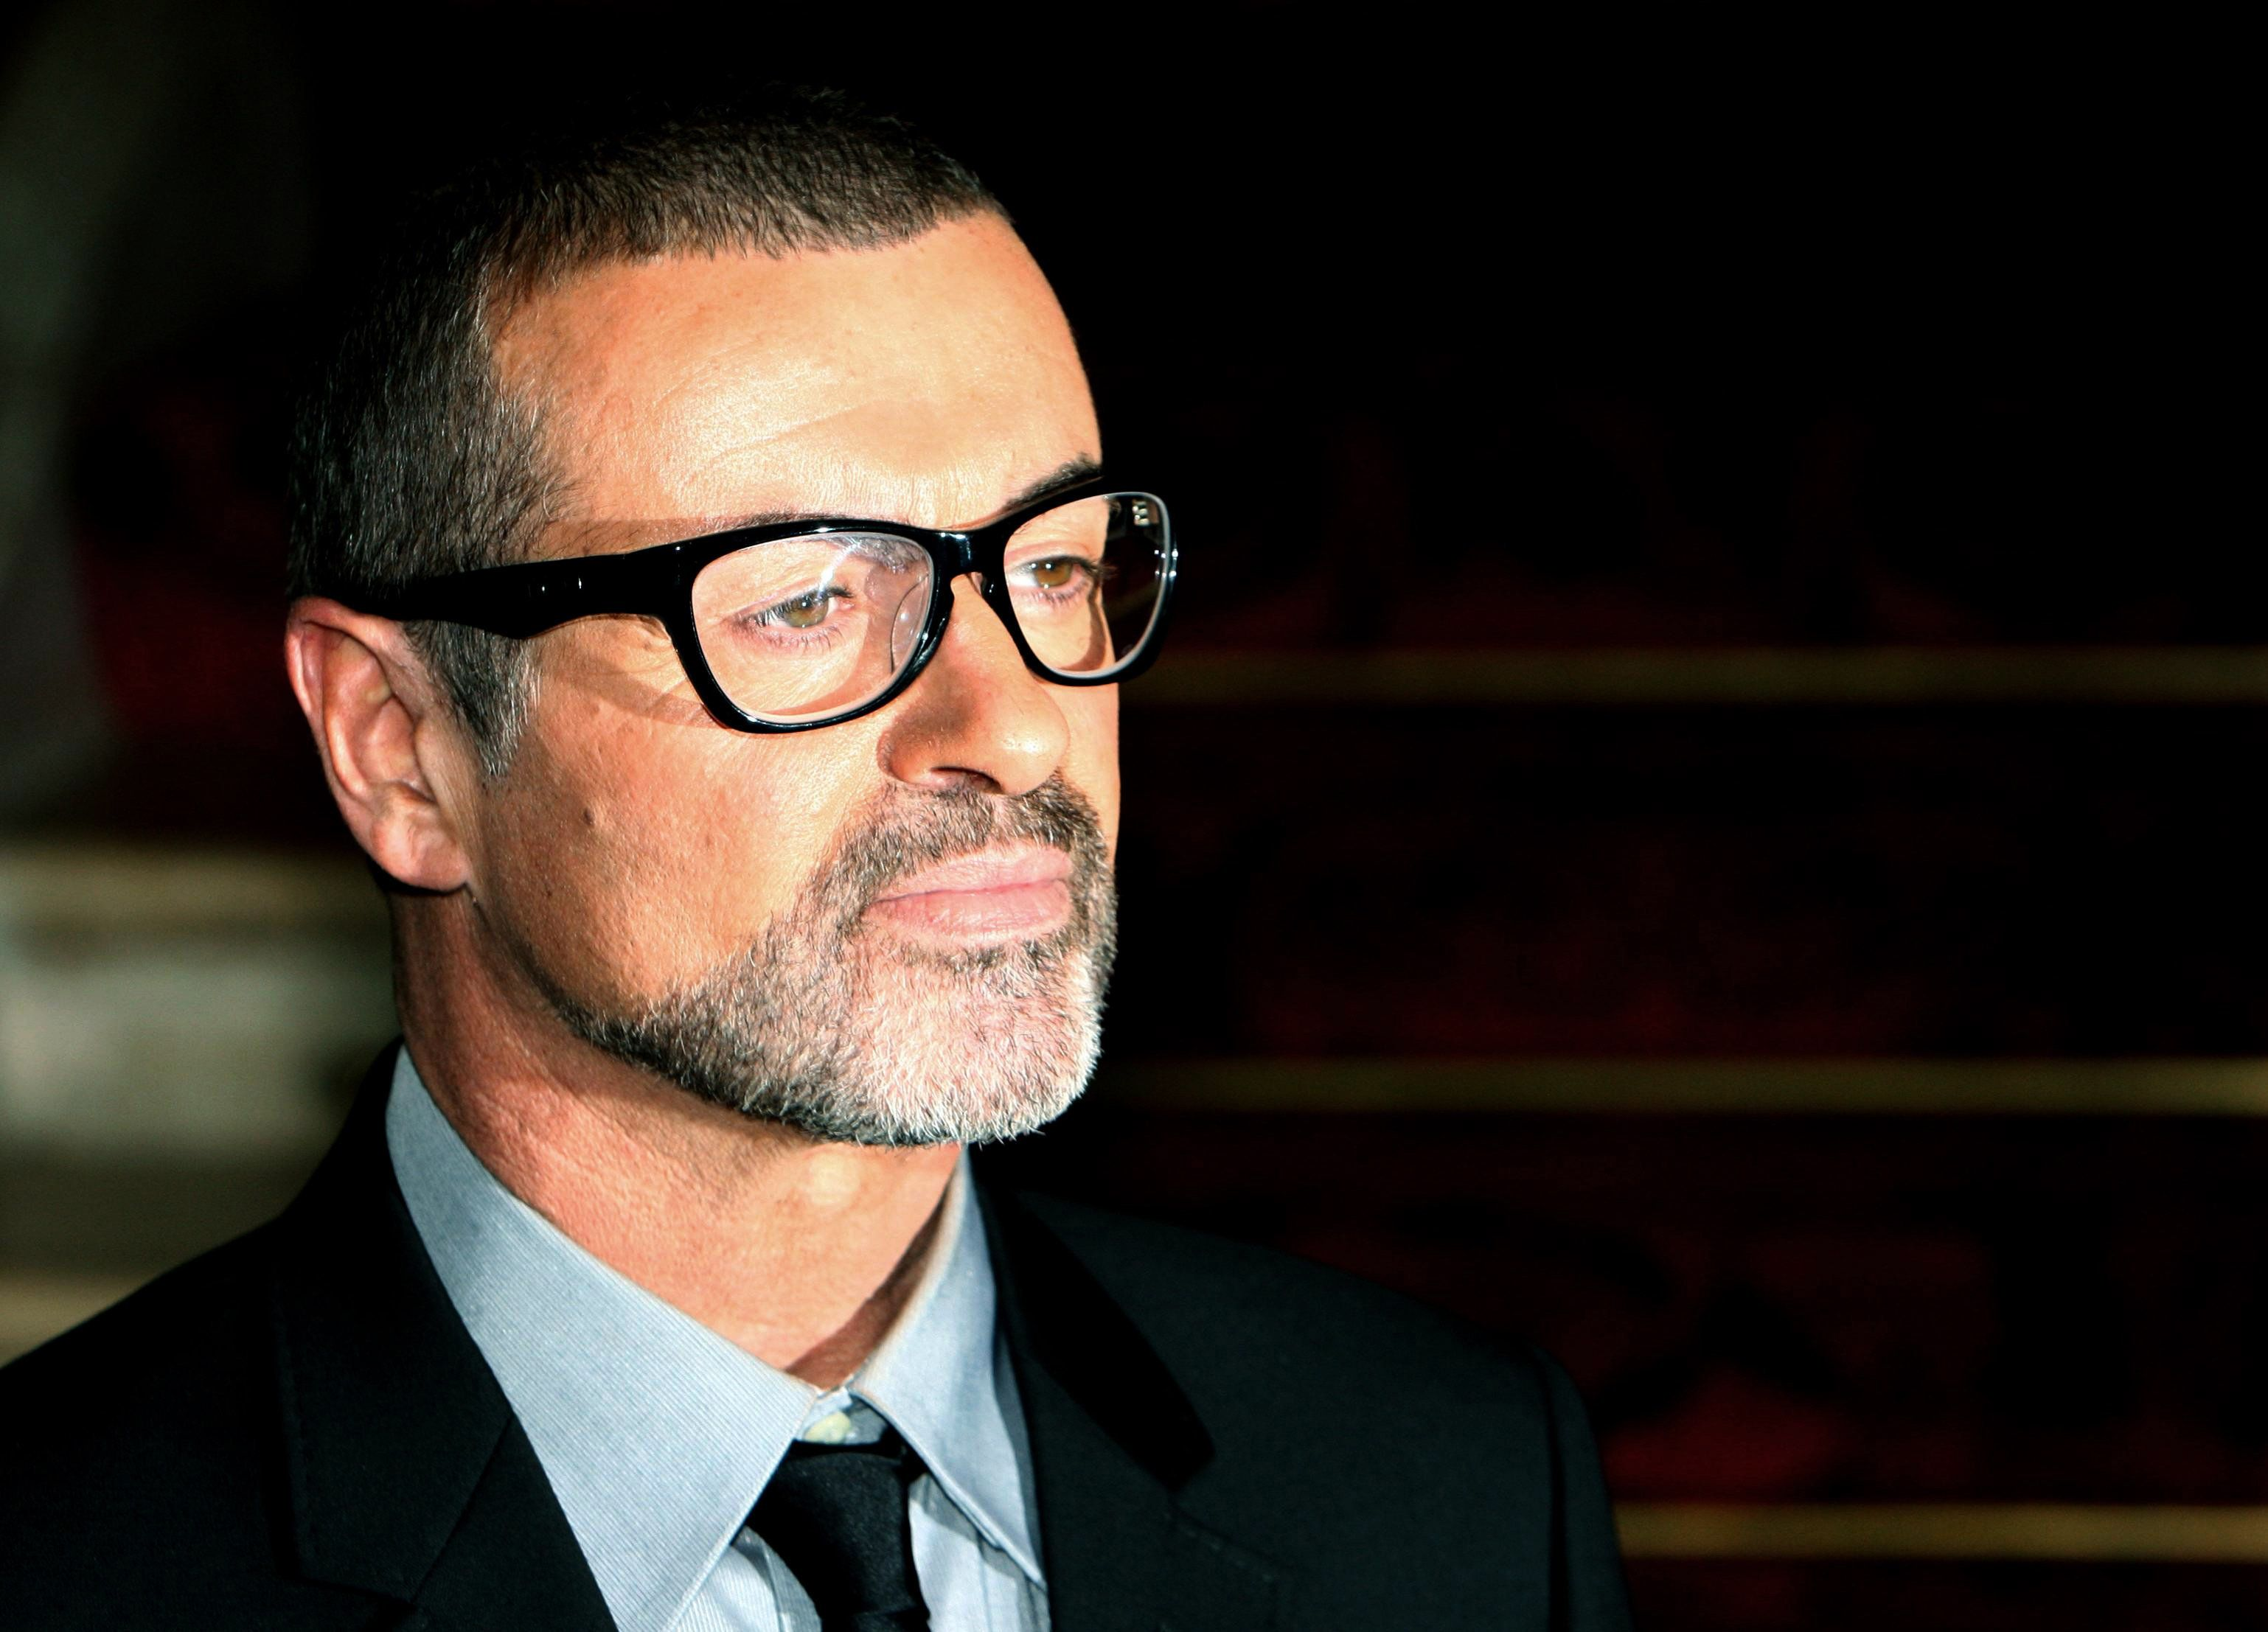 George Michael Finally Laid To Rest In Intimate Ceremony For Family And